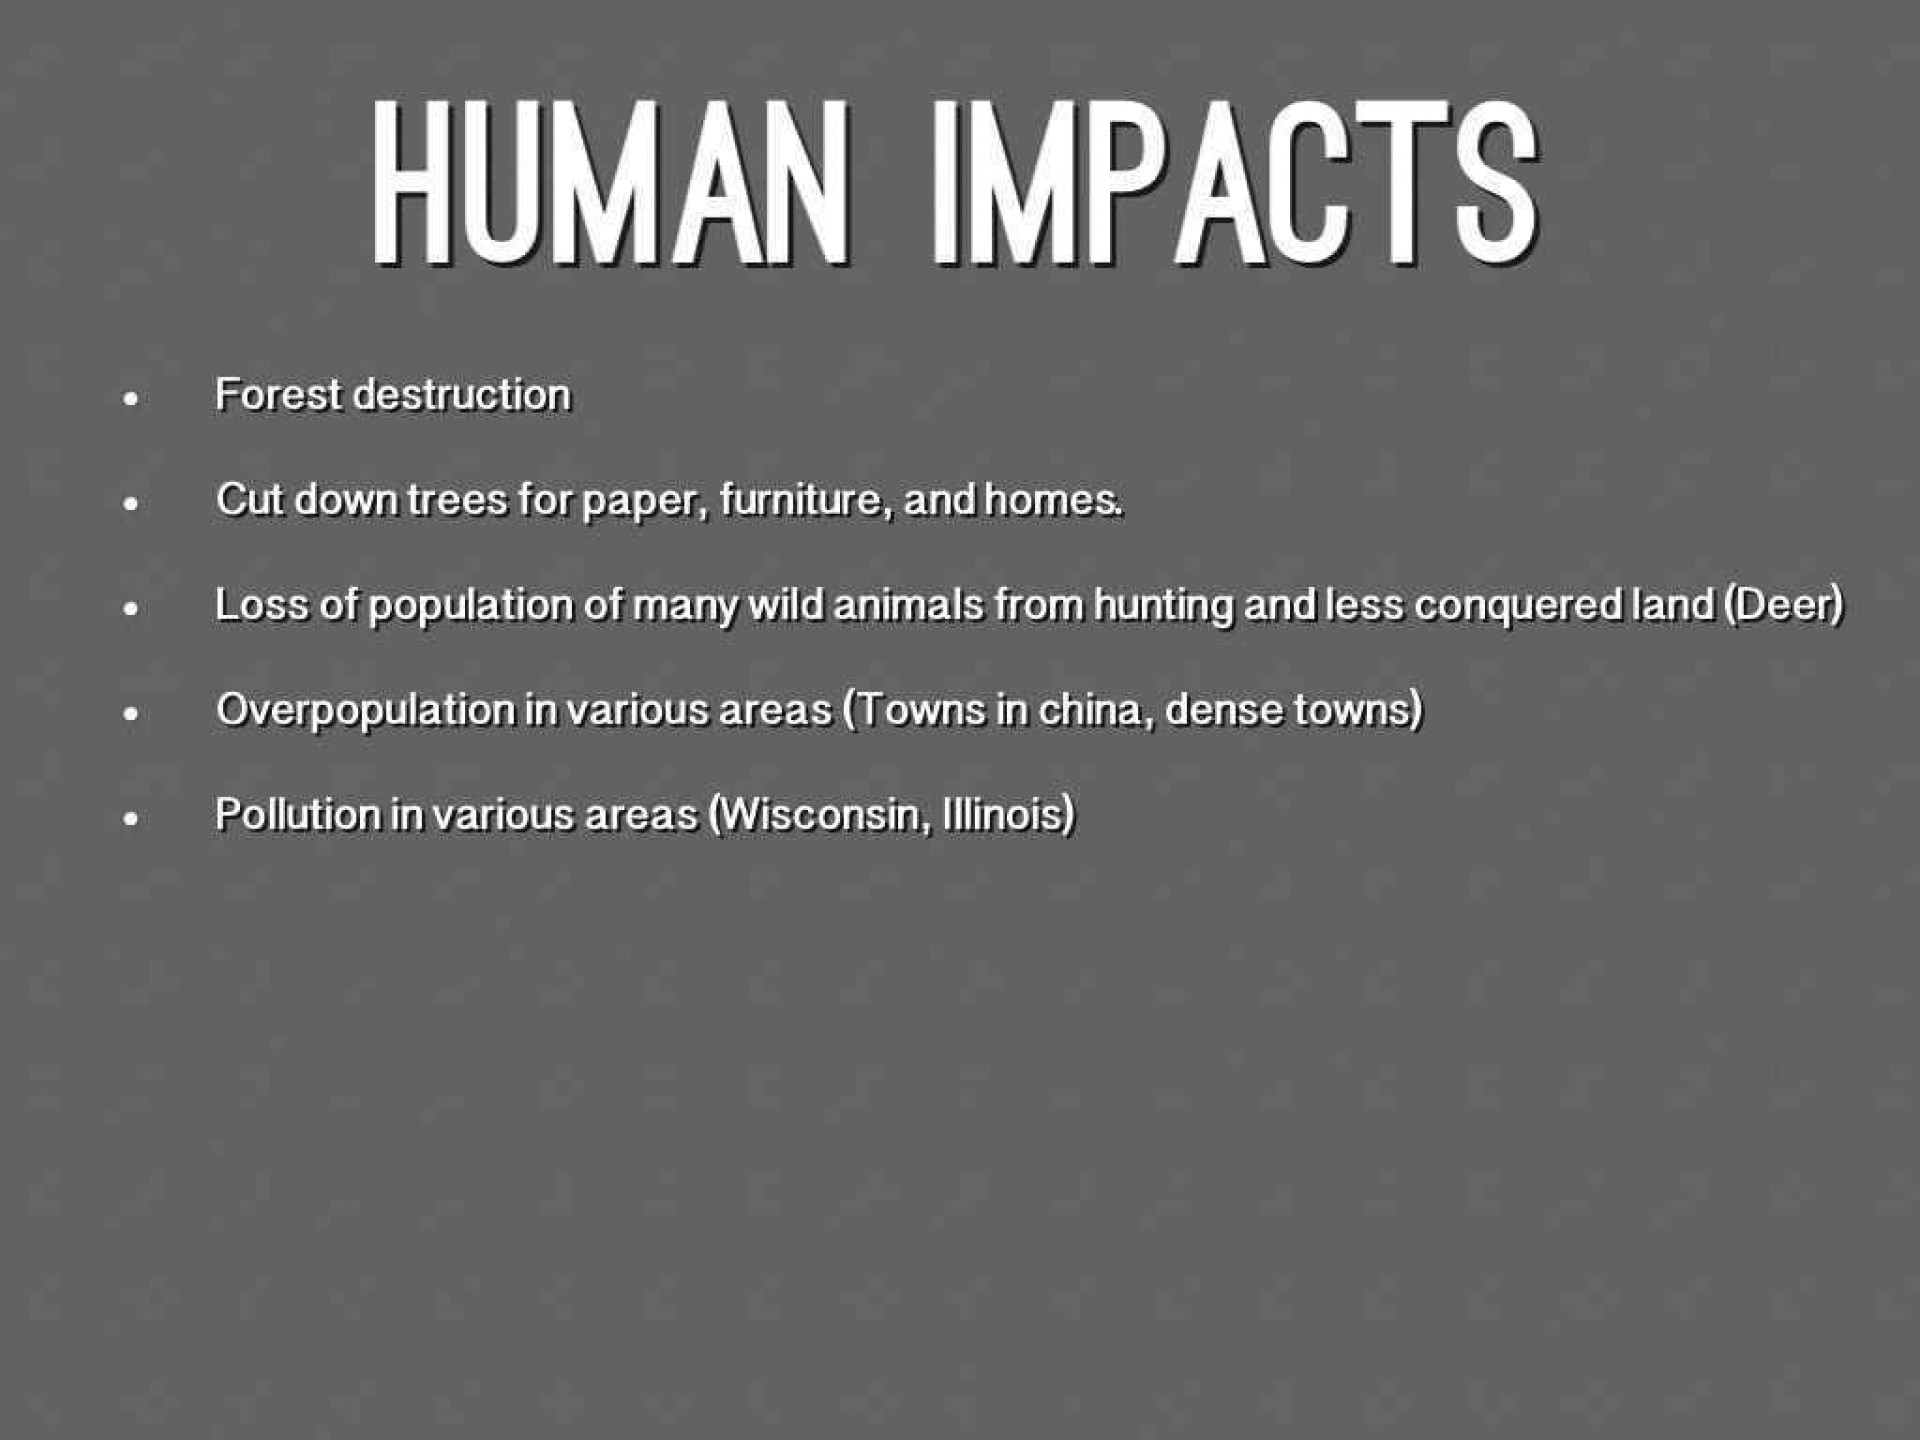 011 Human Impact On The Environment Essay Topics Example About Nature And Impressive 1920